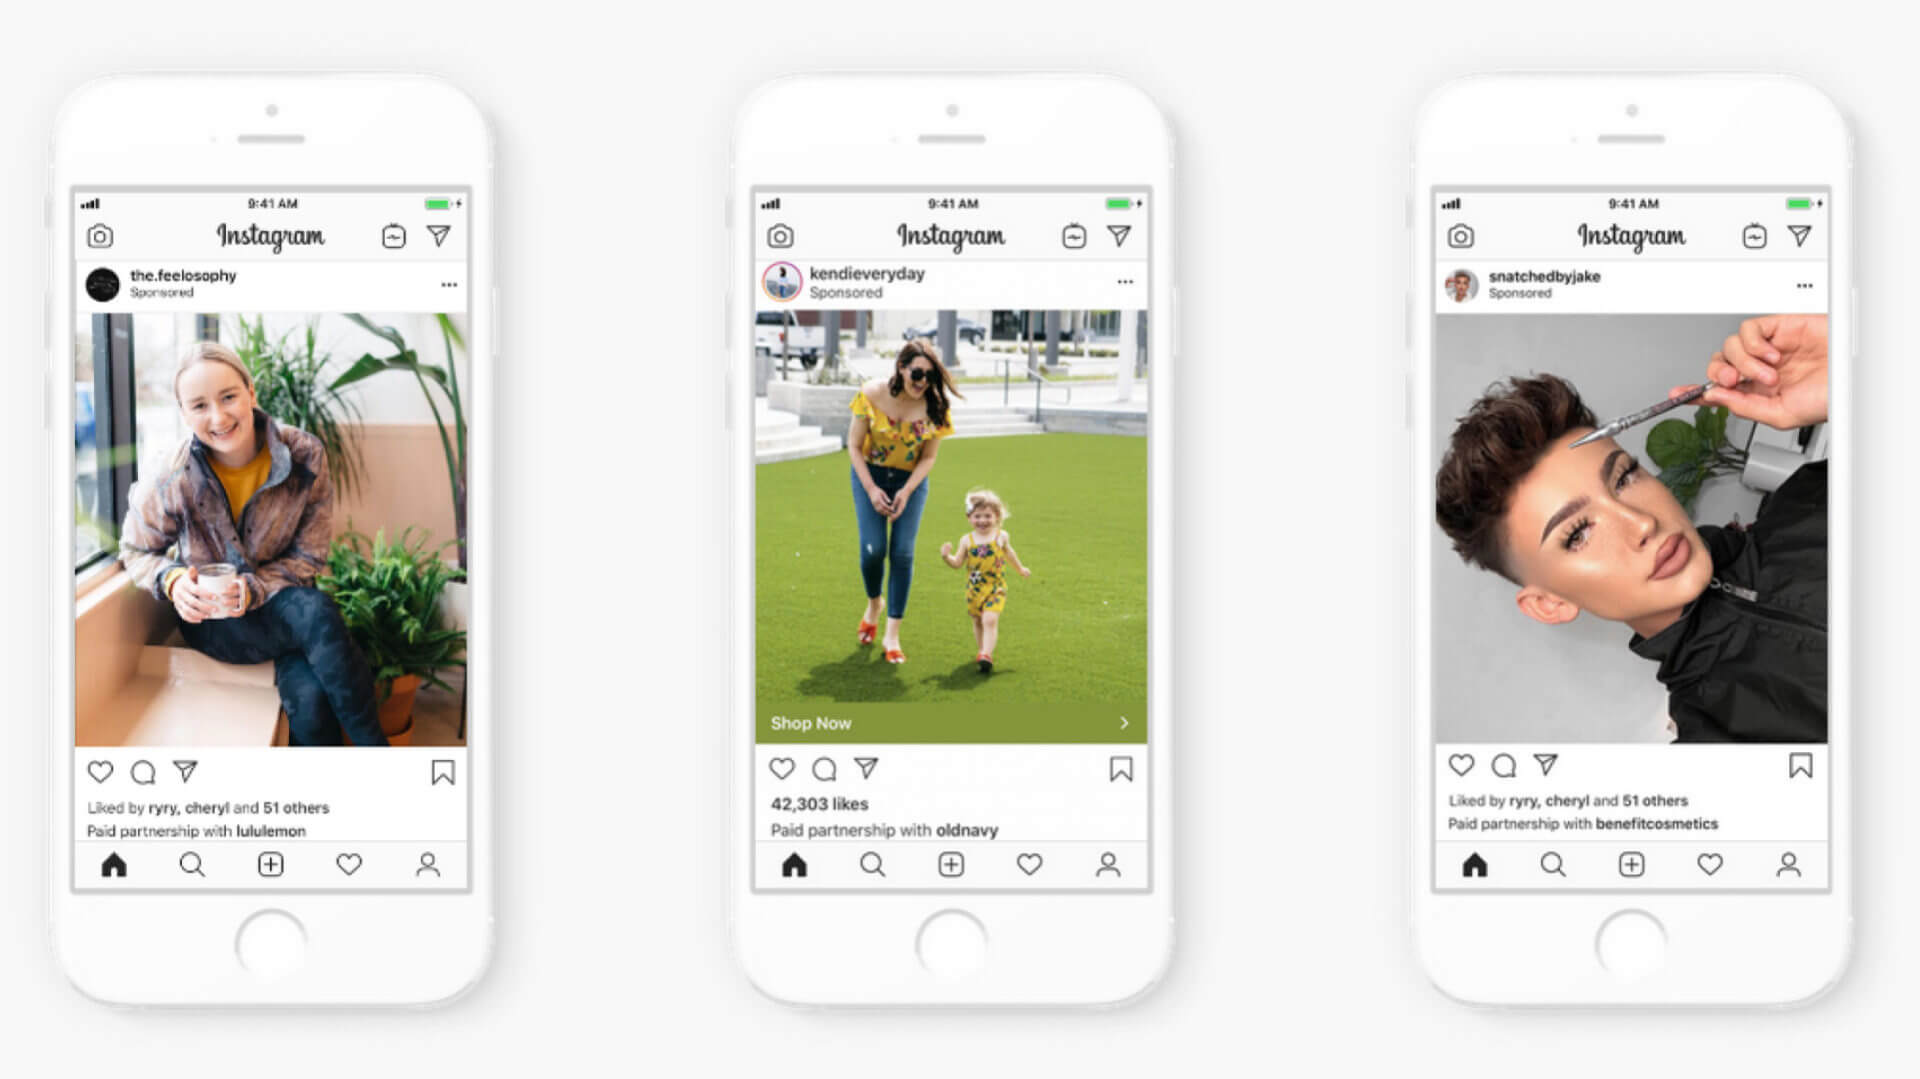 Instagram advertisers can now convert organic influencer posts into ads